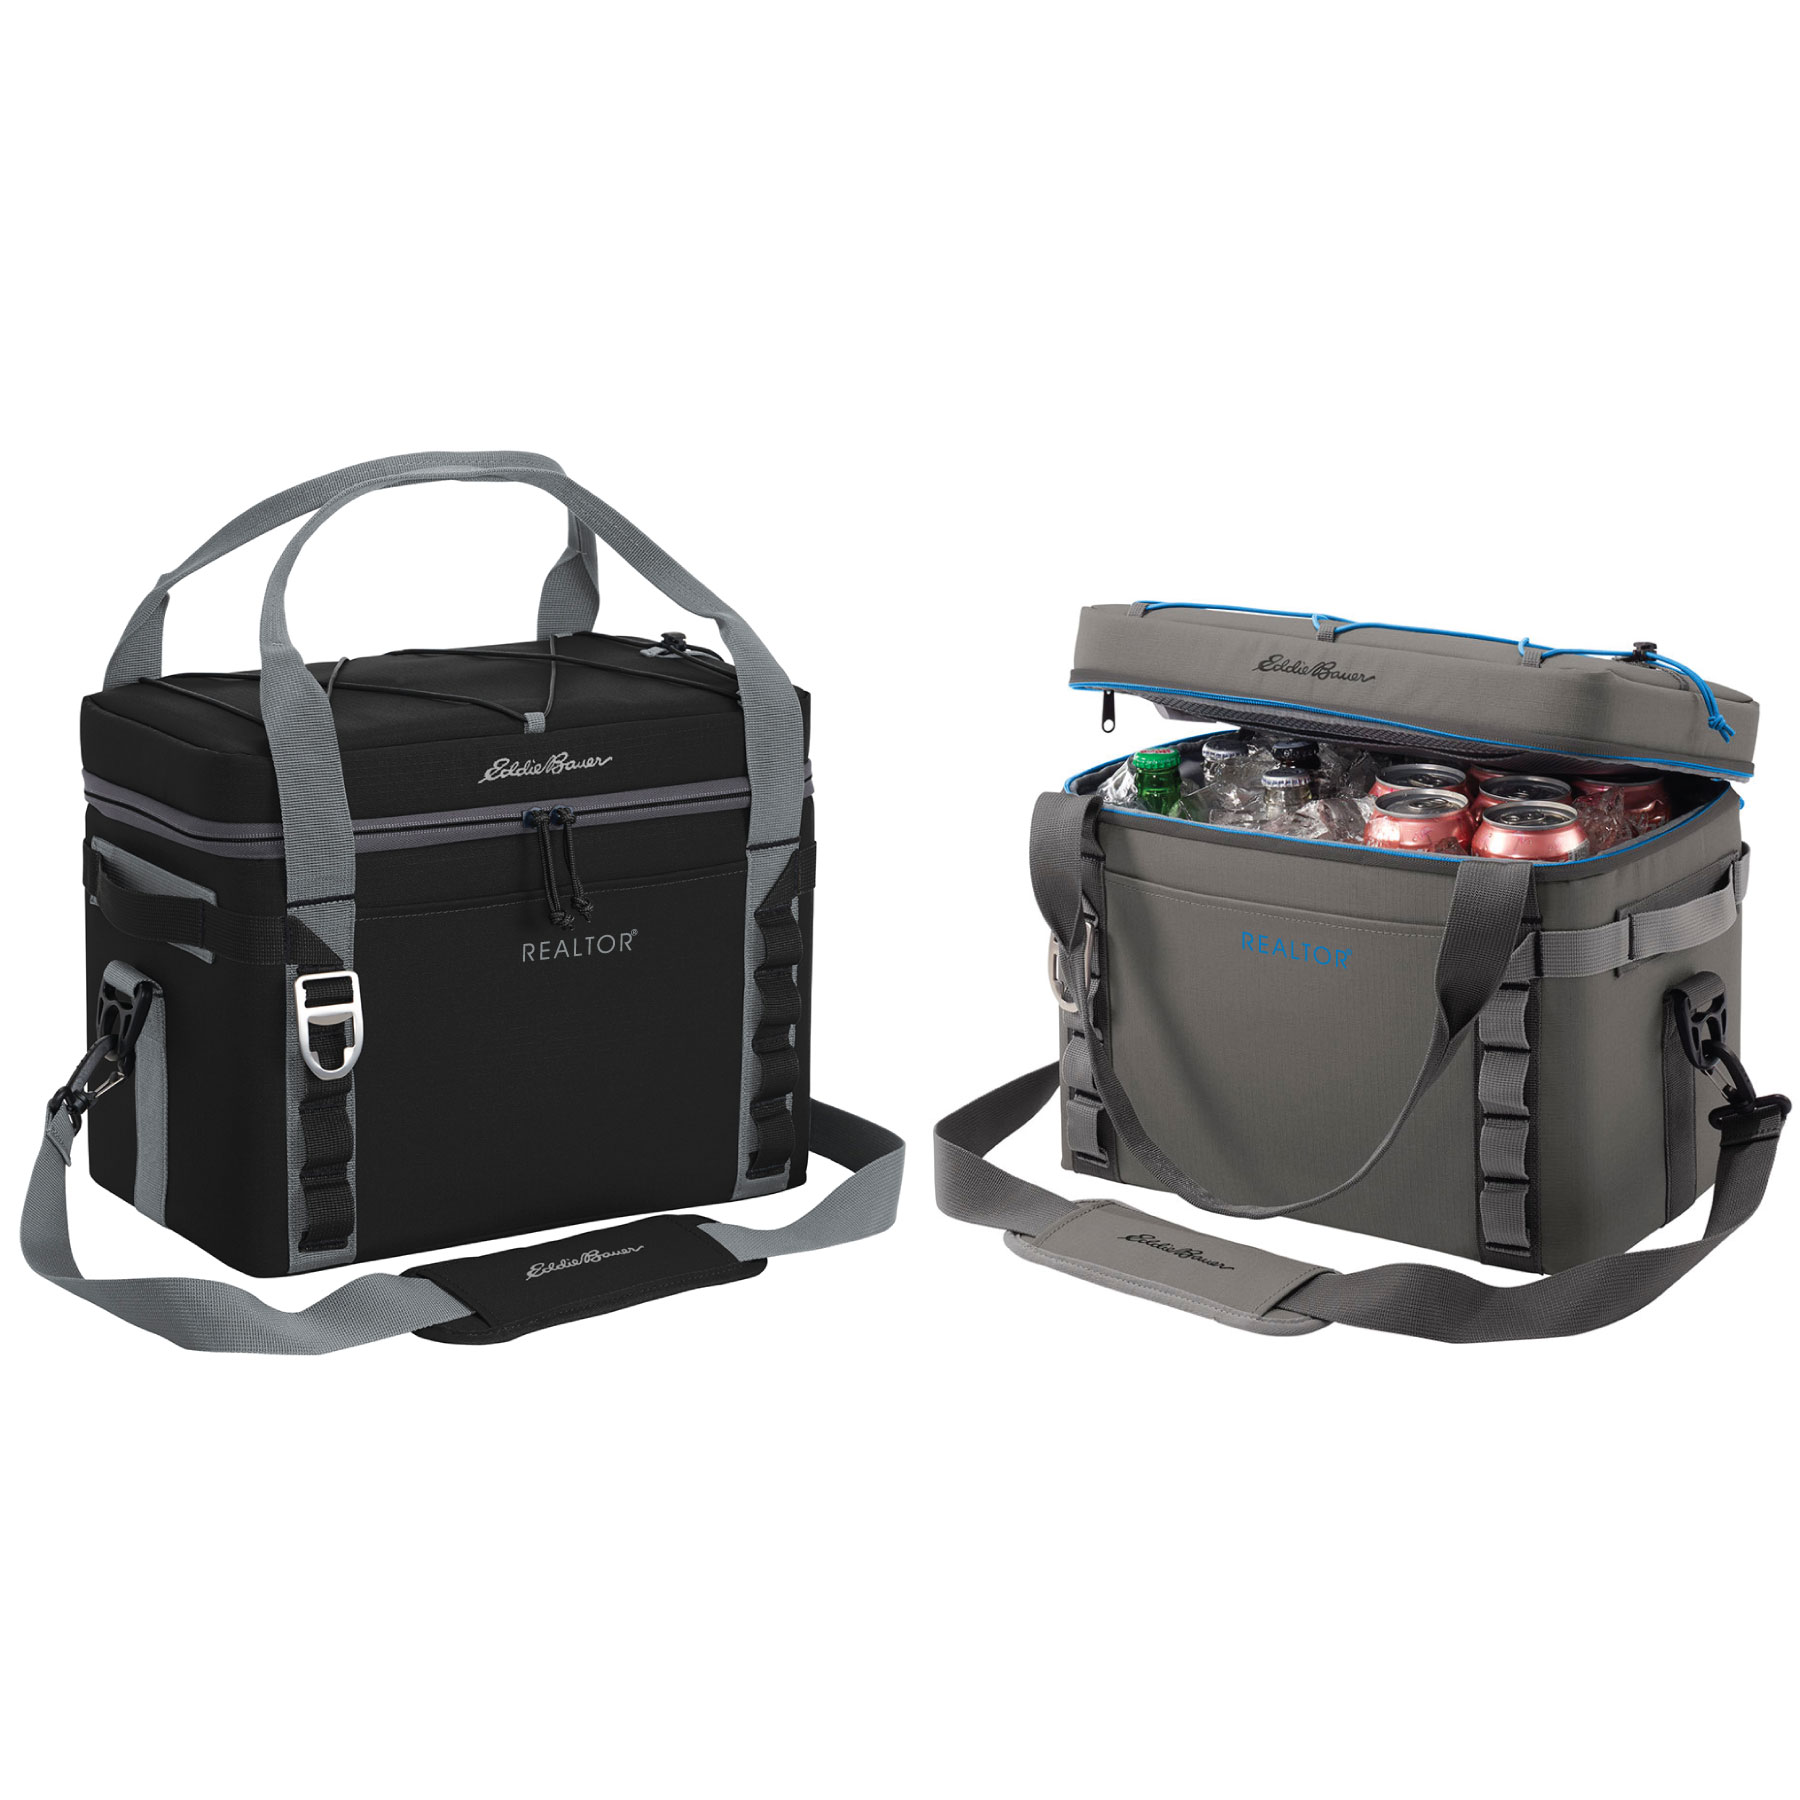 Max Cool Eddie Bauer® 24-Can Cooler - SOLD OUT Yetis,Coolers,Cool,24,48,ice,fishes,drinks